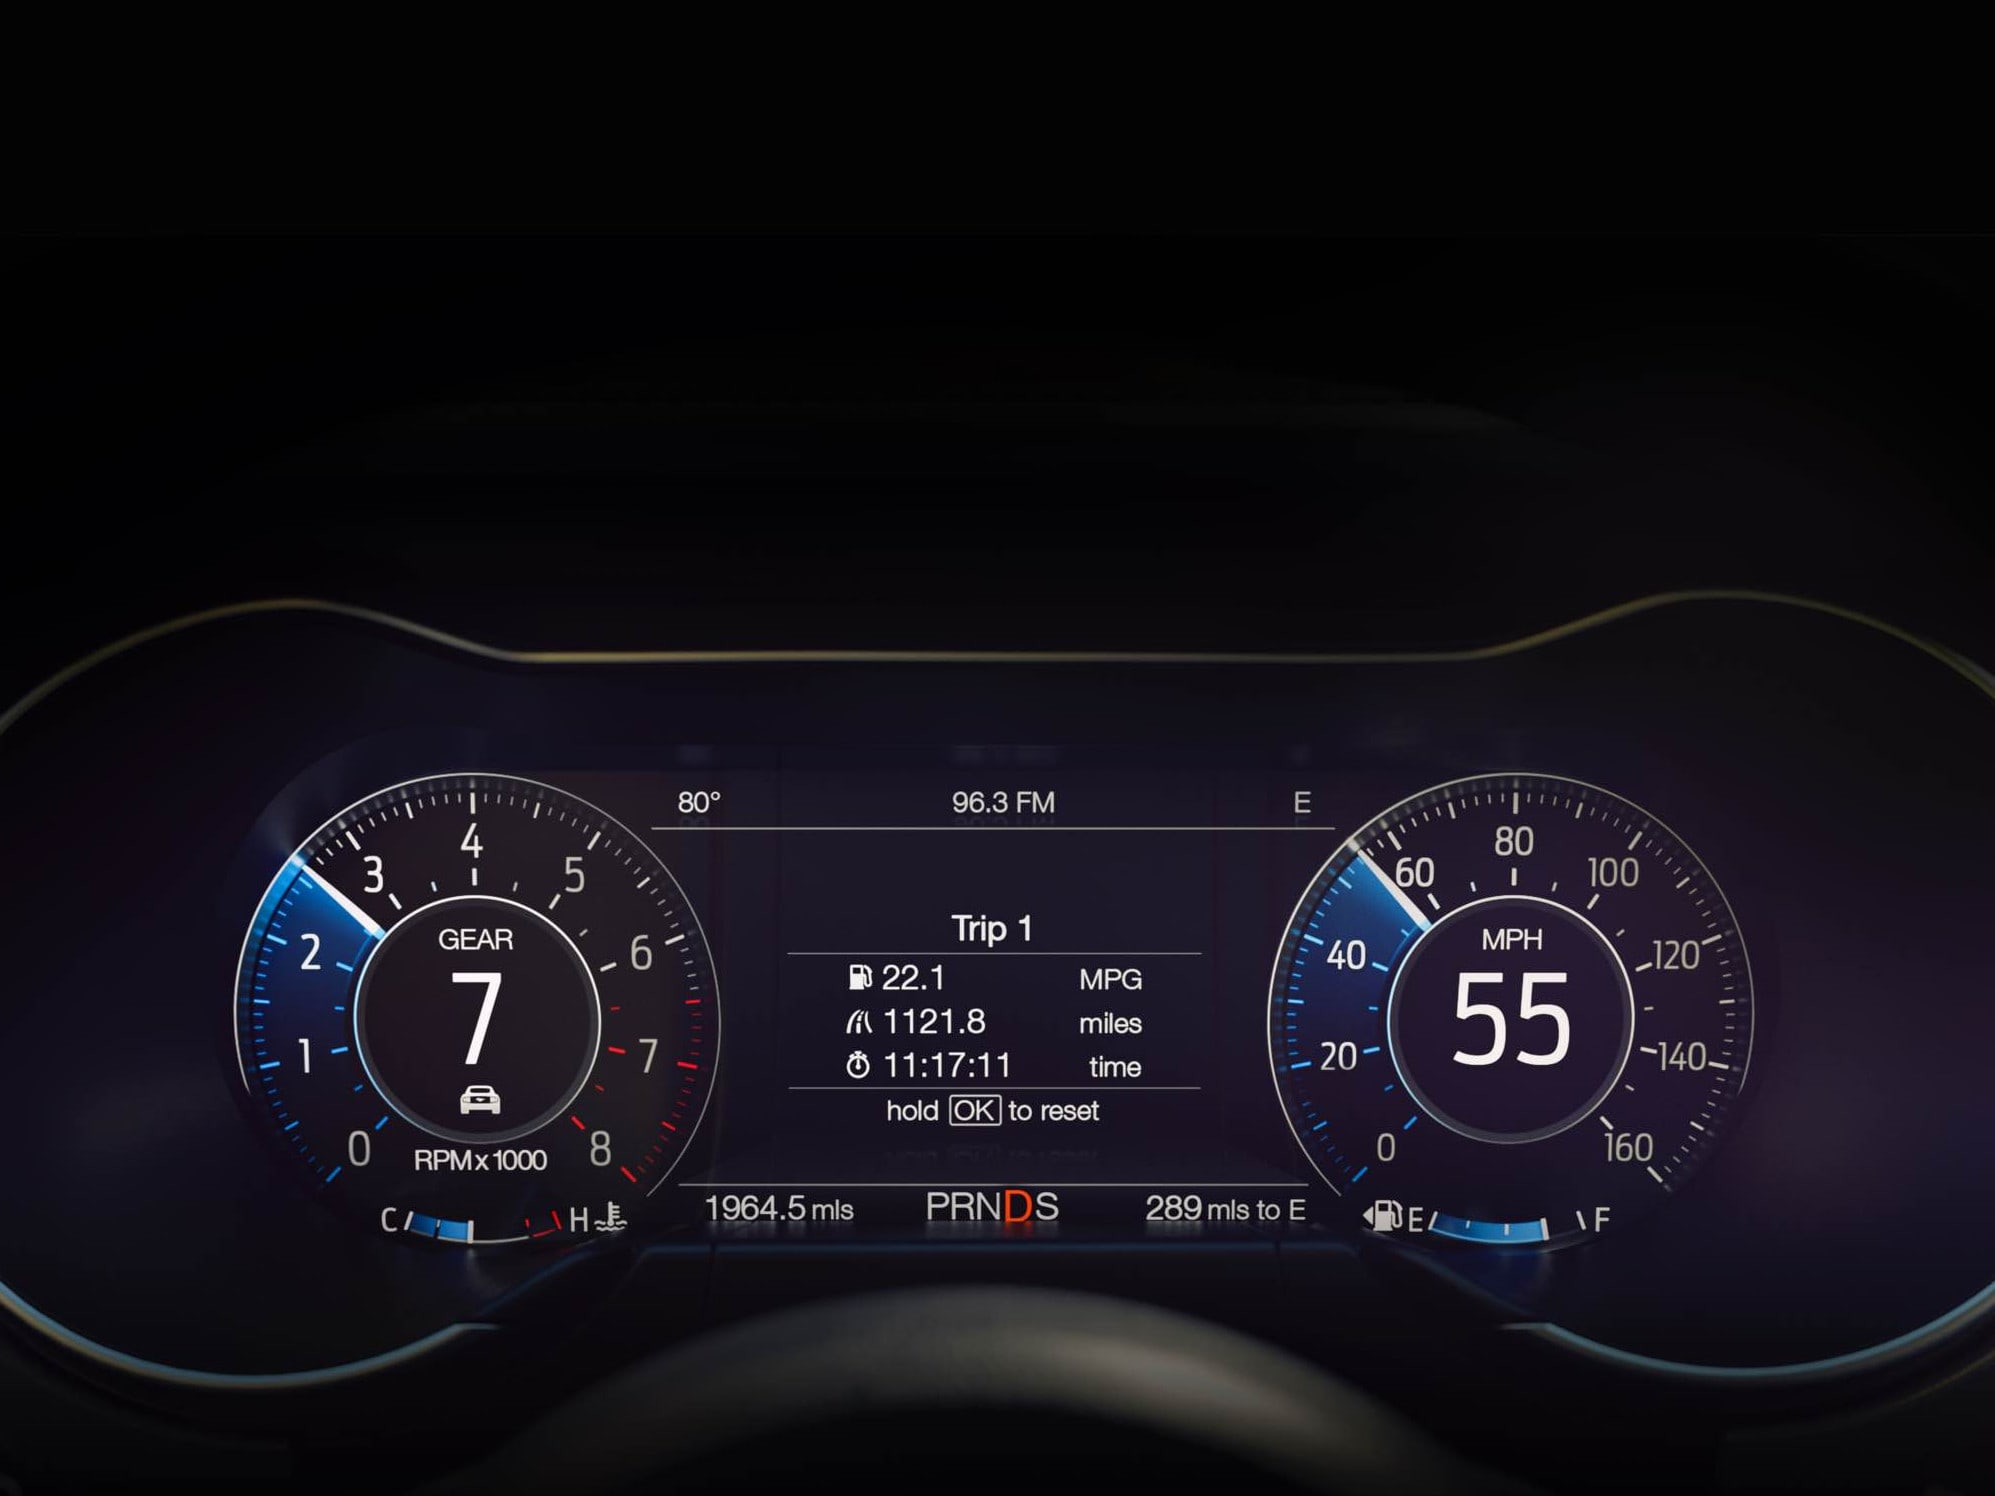 632_New -Ford -Mustang -12-inch -LCD-digital -instrument -cluster -in -Normal -View